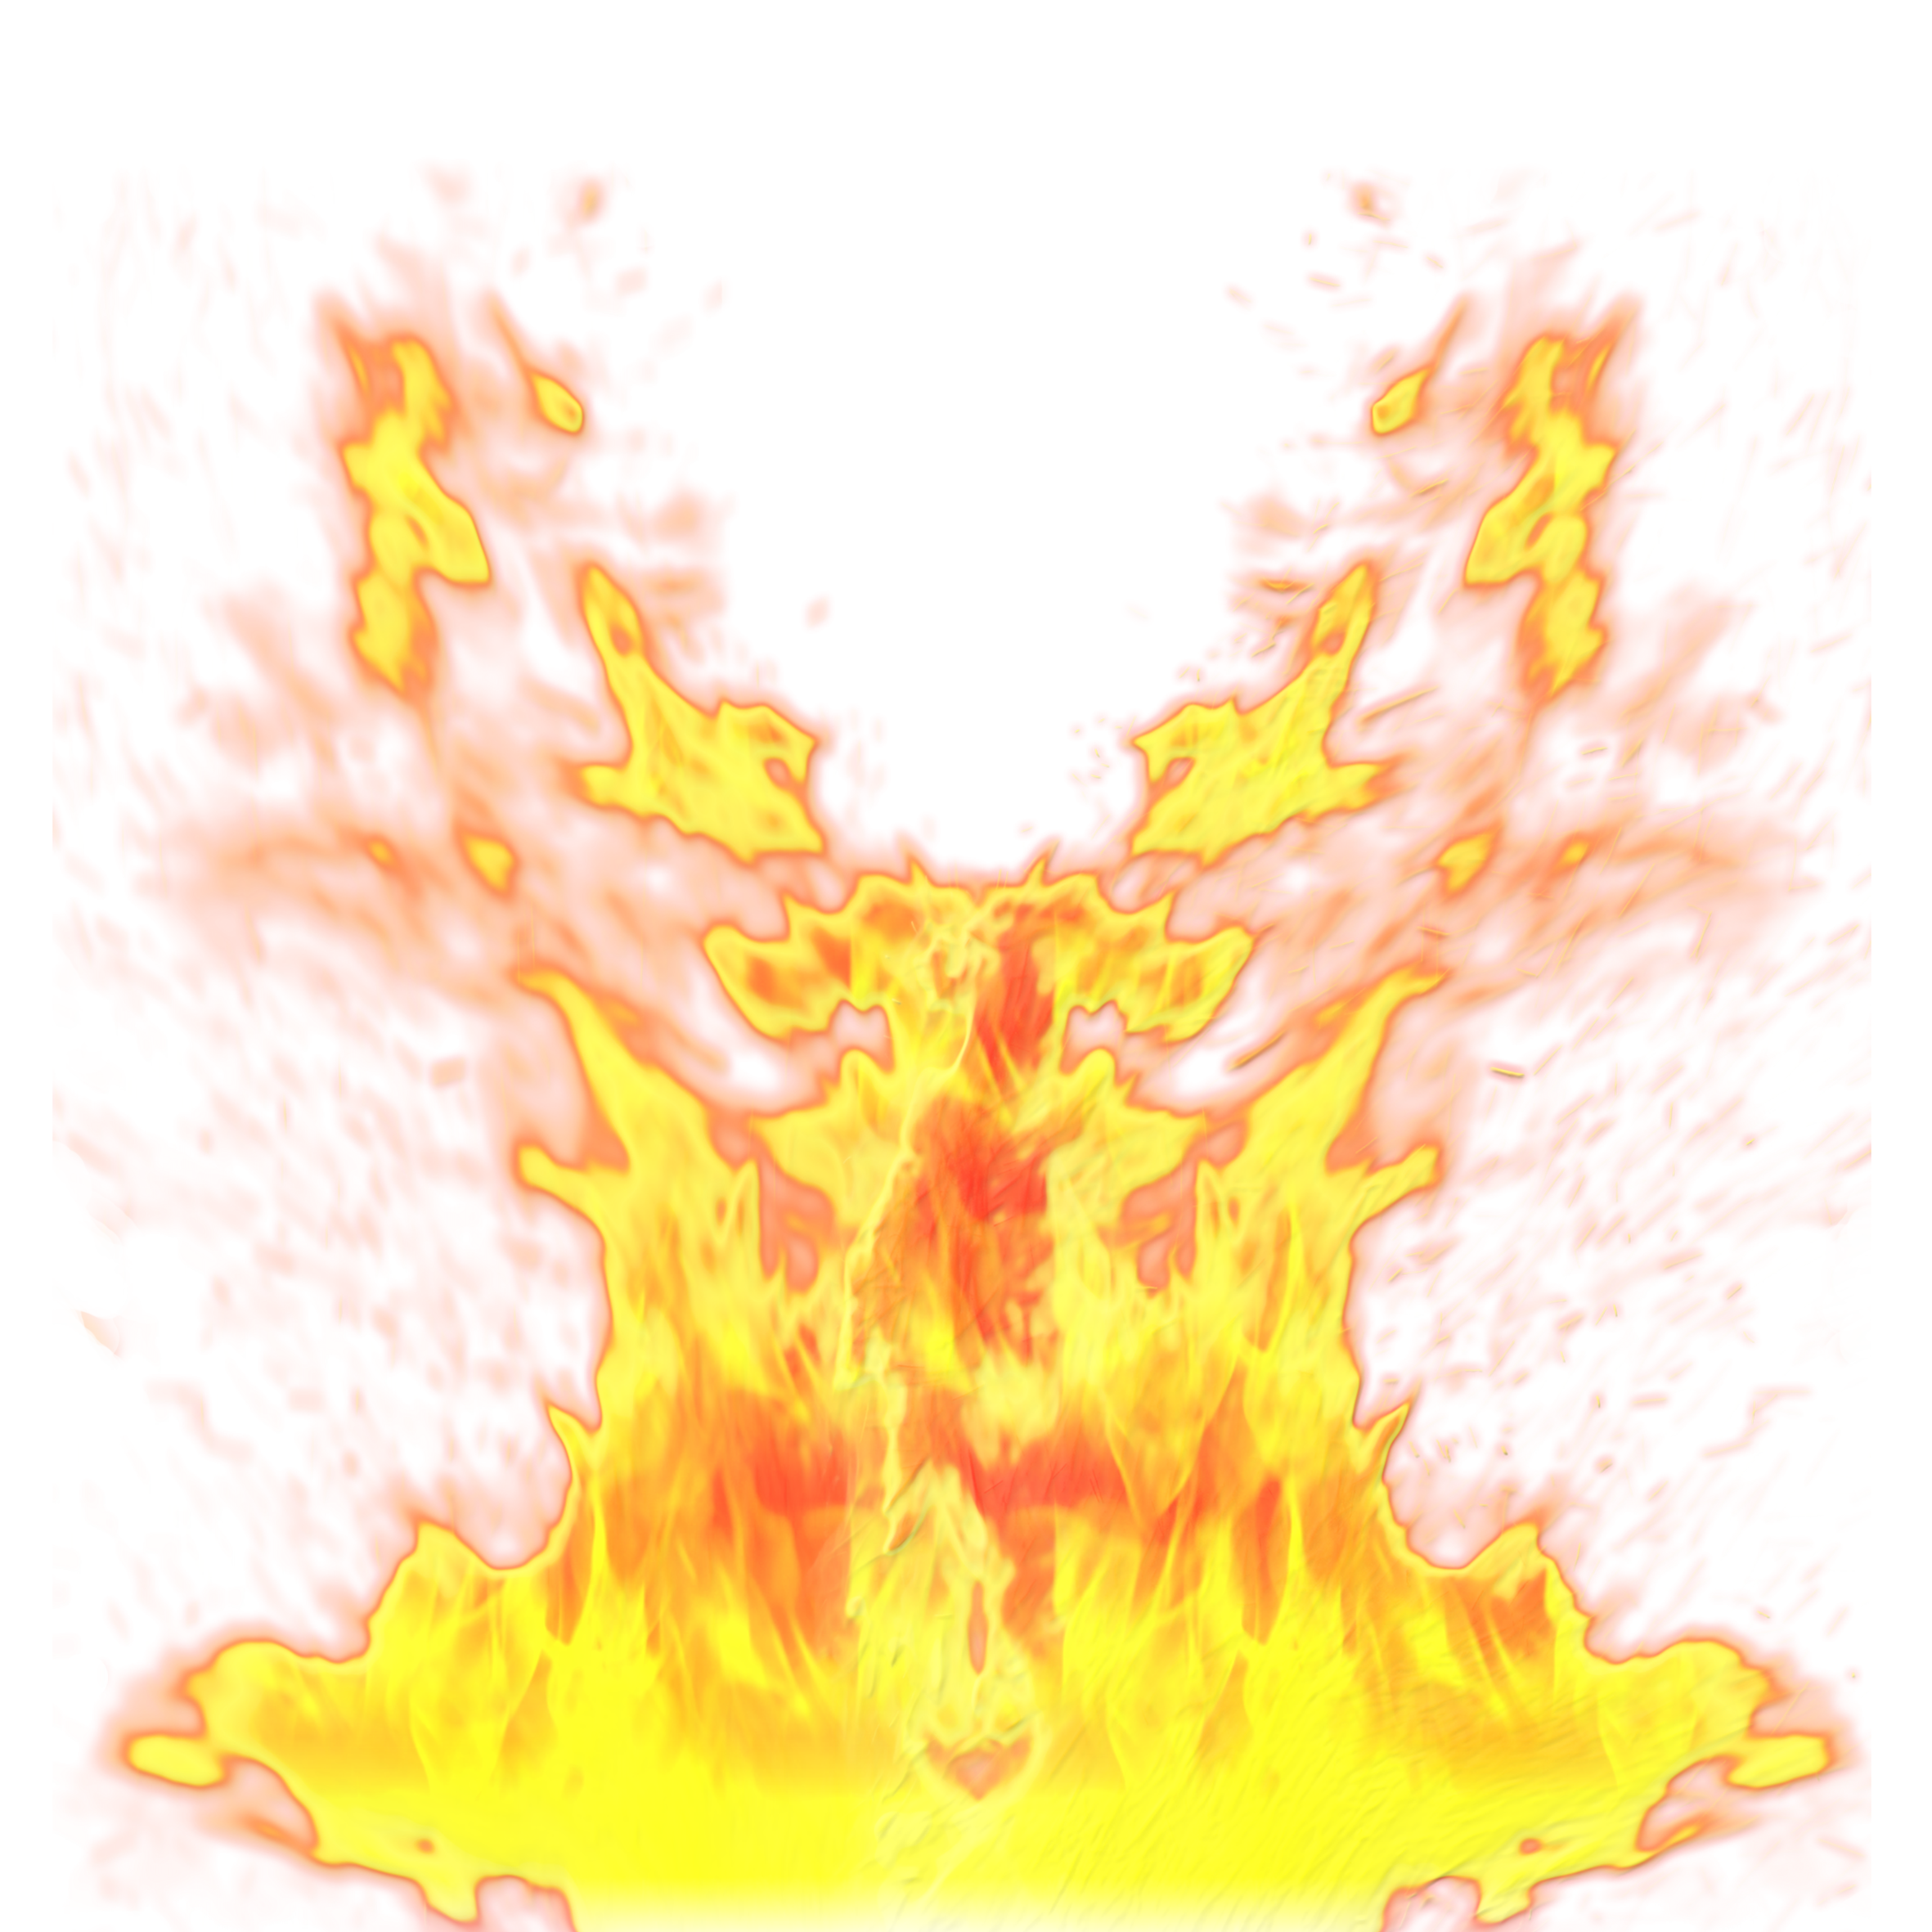 Free house fire clipart image stock High quality Fire Cliparts For Free! #687 - Free Icons and PNG ... image stock